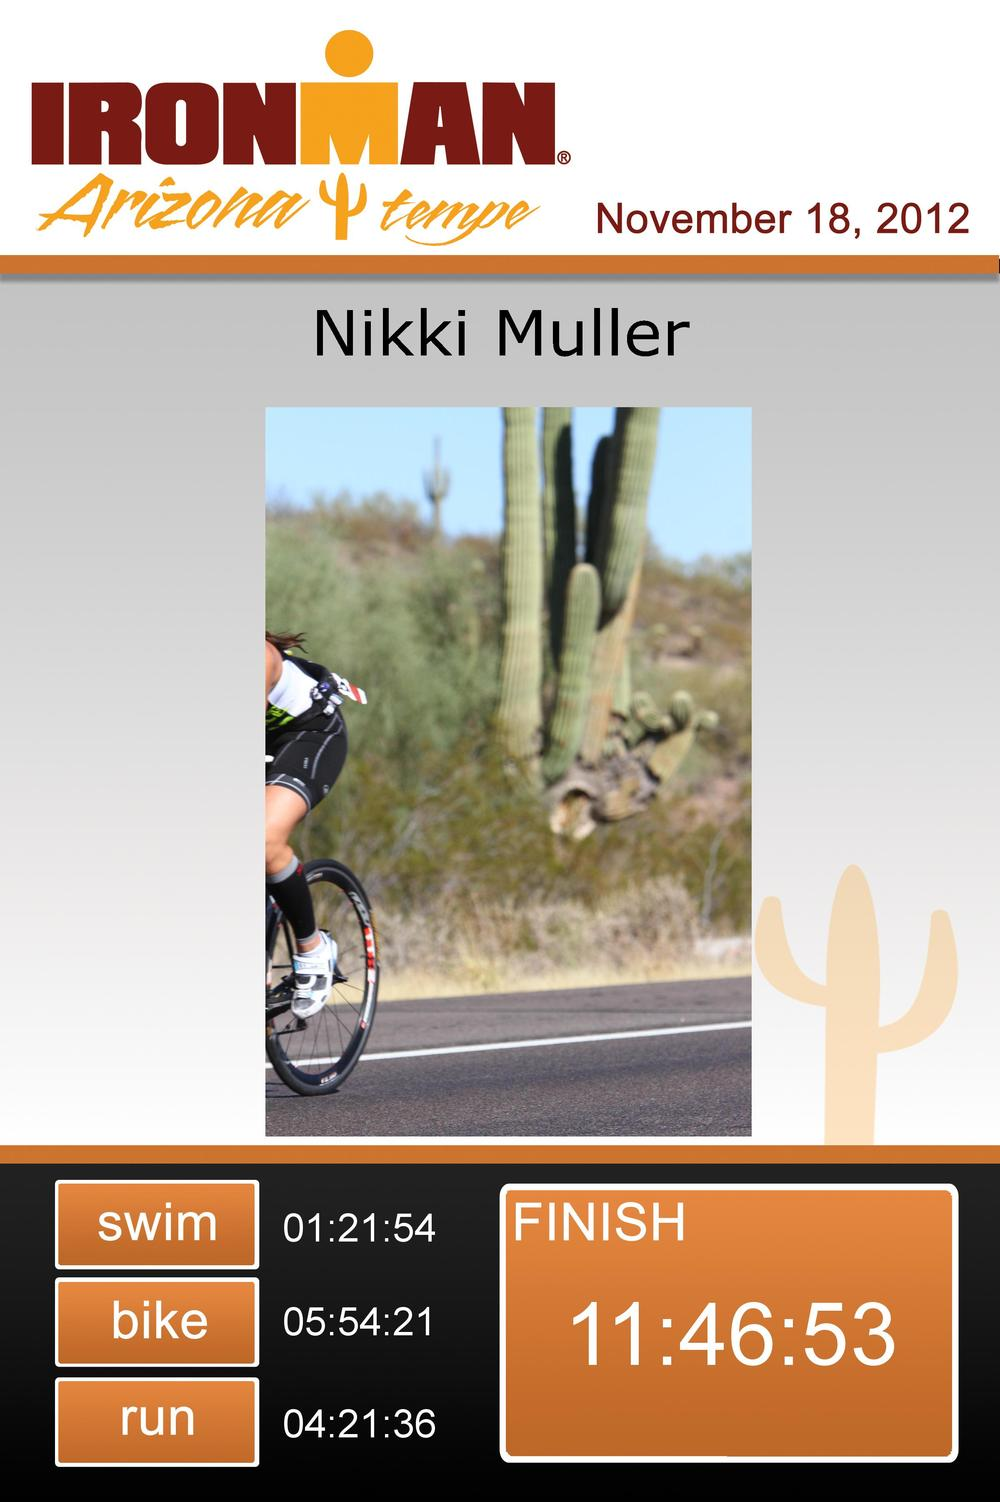 I like this finisher certificate exclusively because it looks like I was so fast on the bike that I could not be captured on film. Also, that's a pretty sweet cactus.